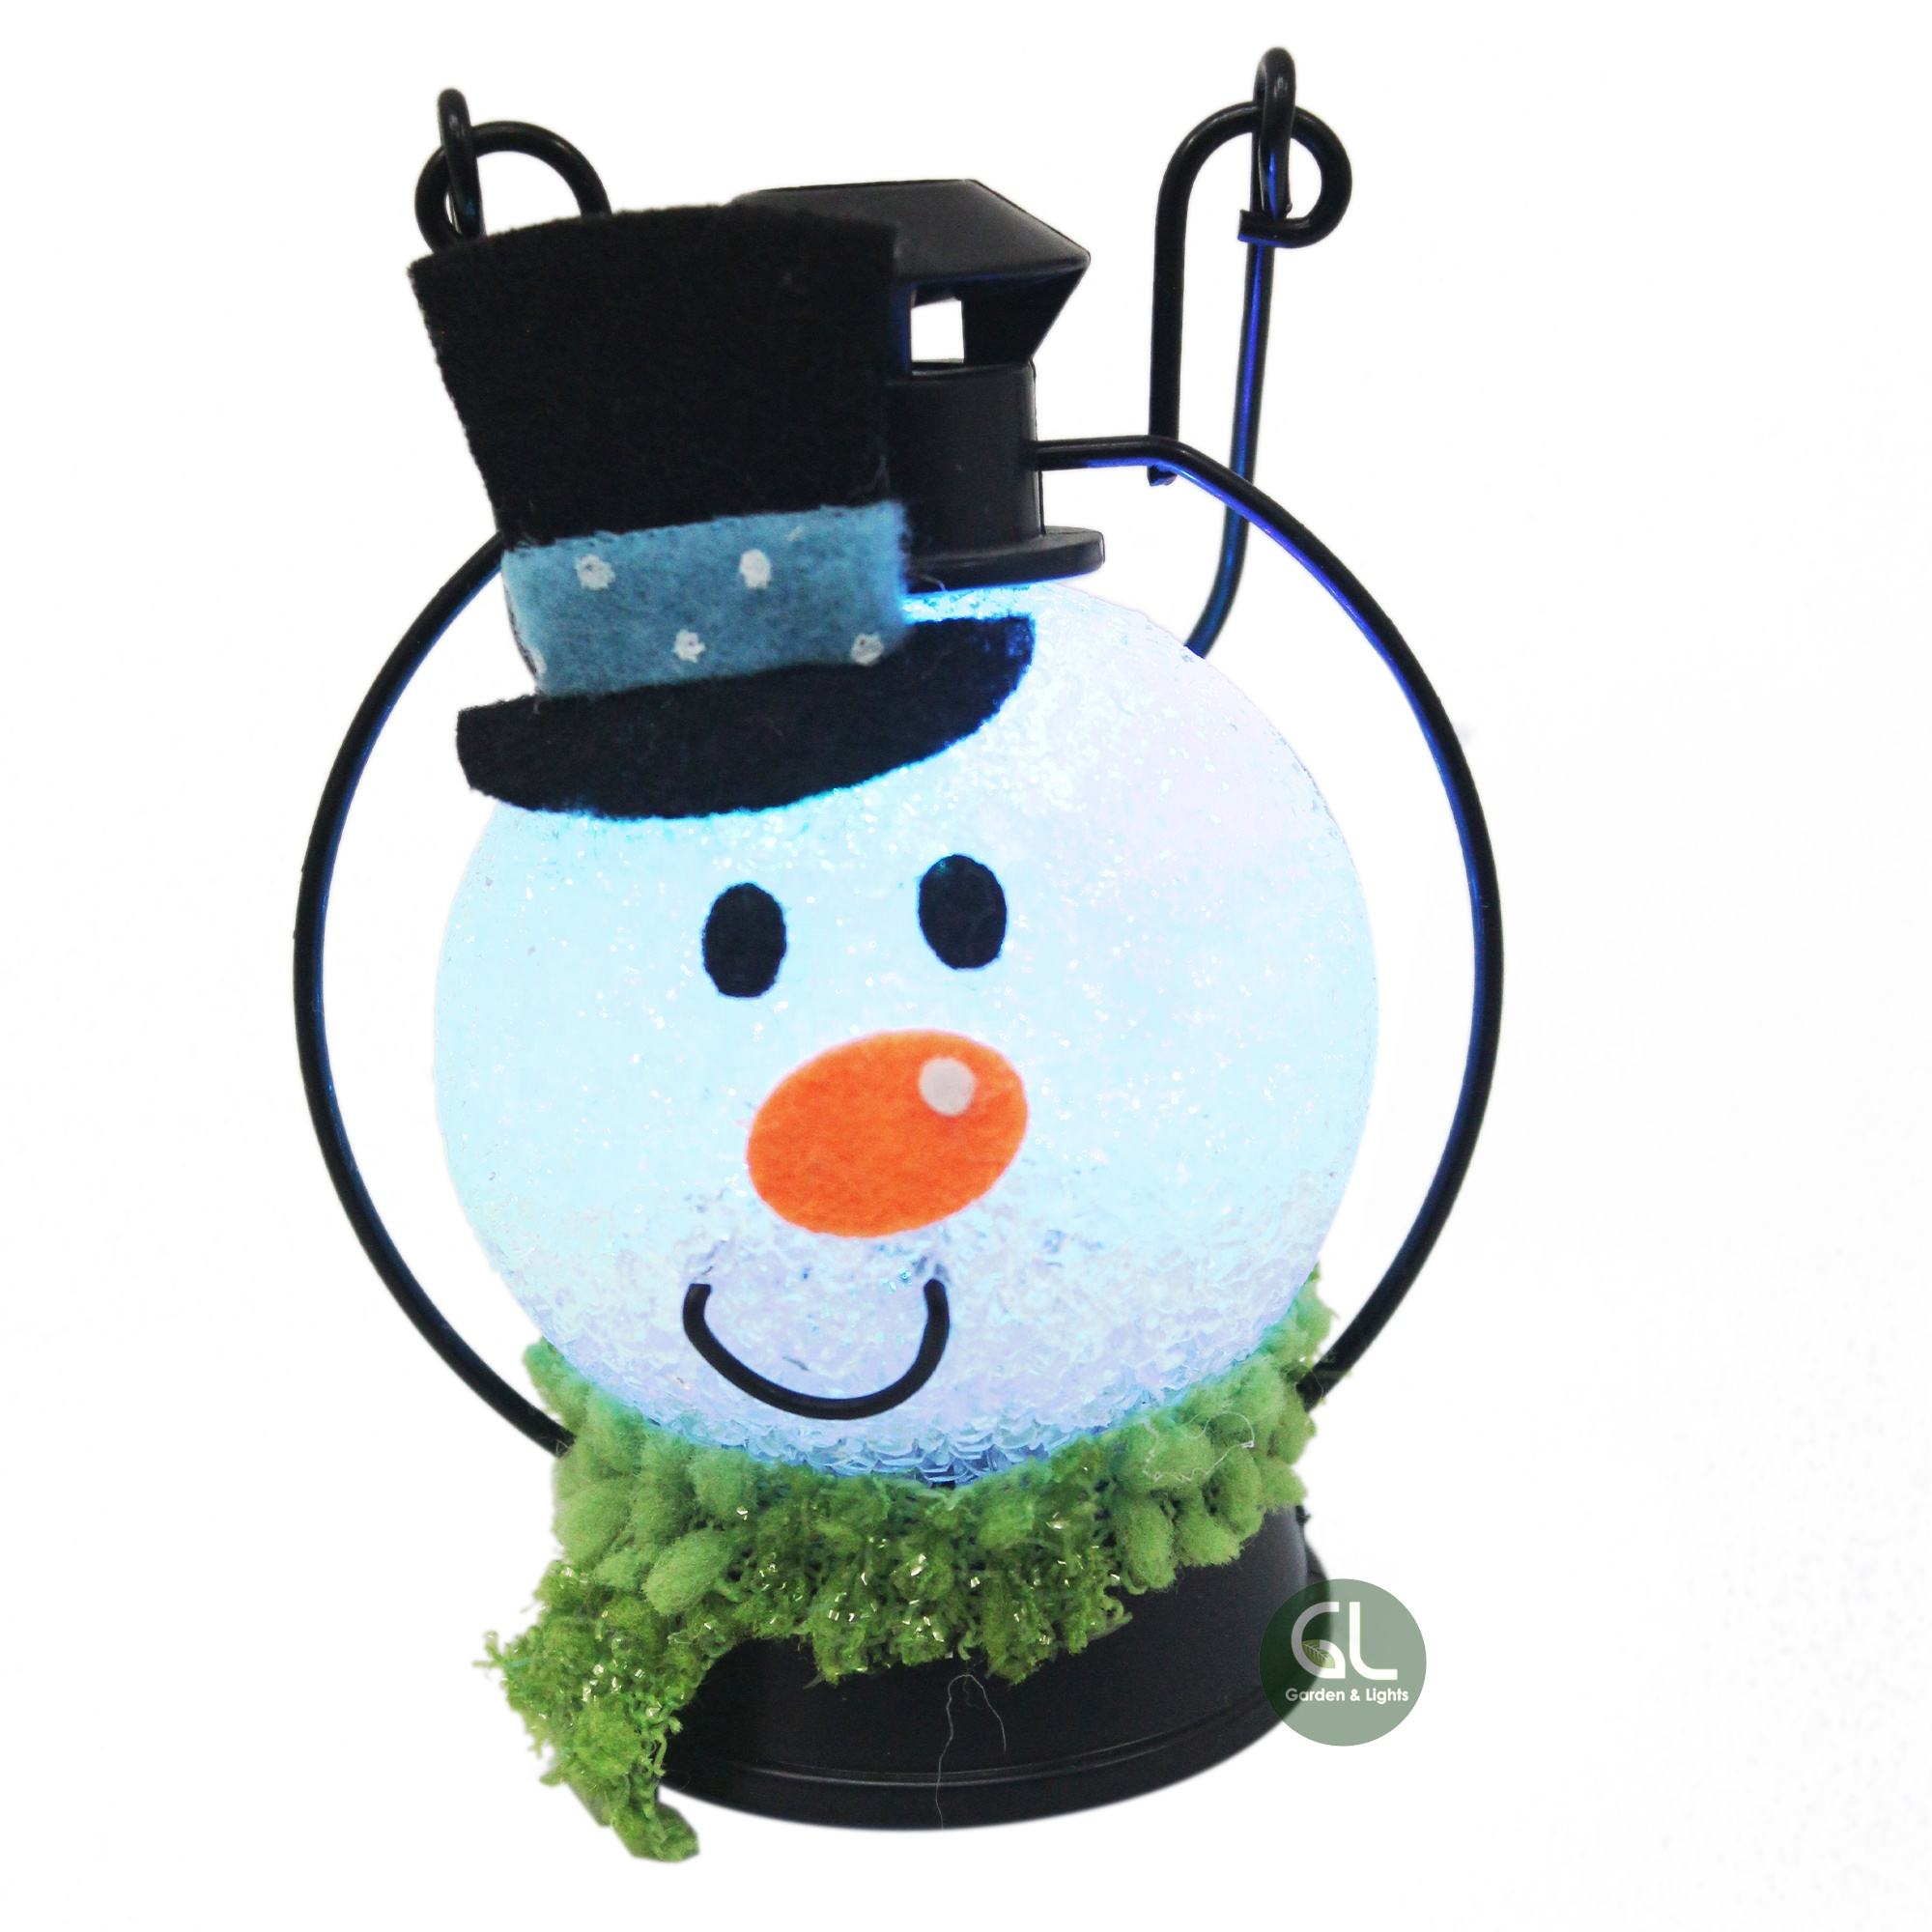 Seasonal and Holiday Hanging Decoration Snowman LED Night Light Snowman Gift